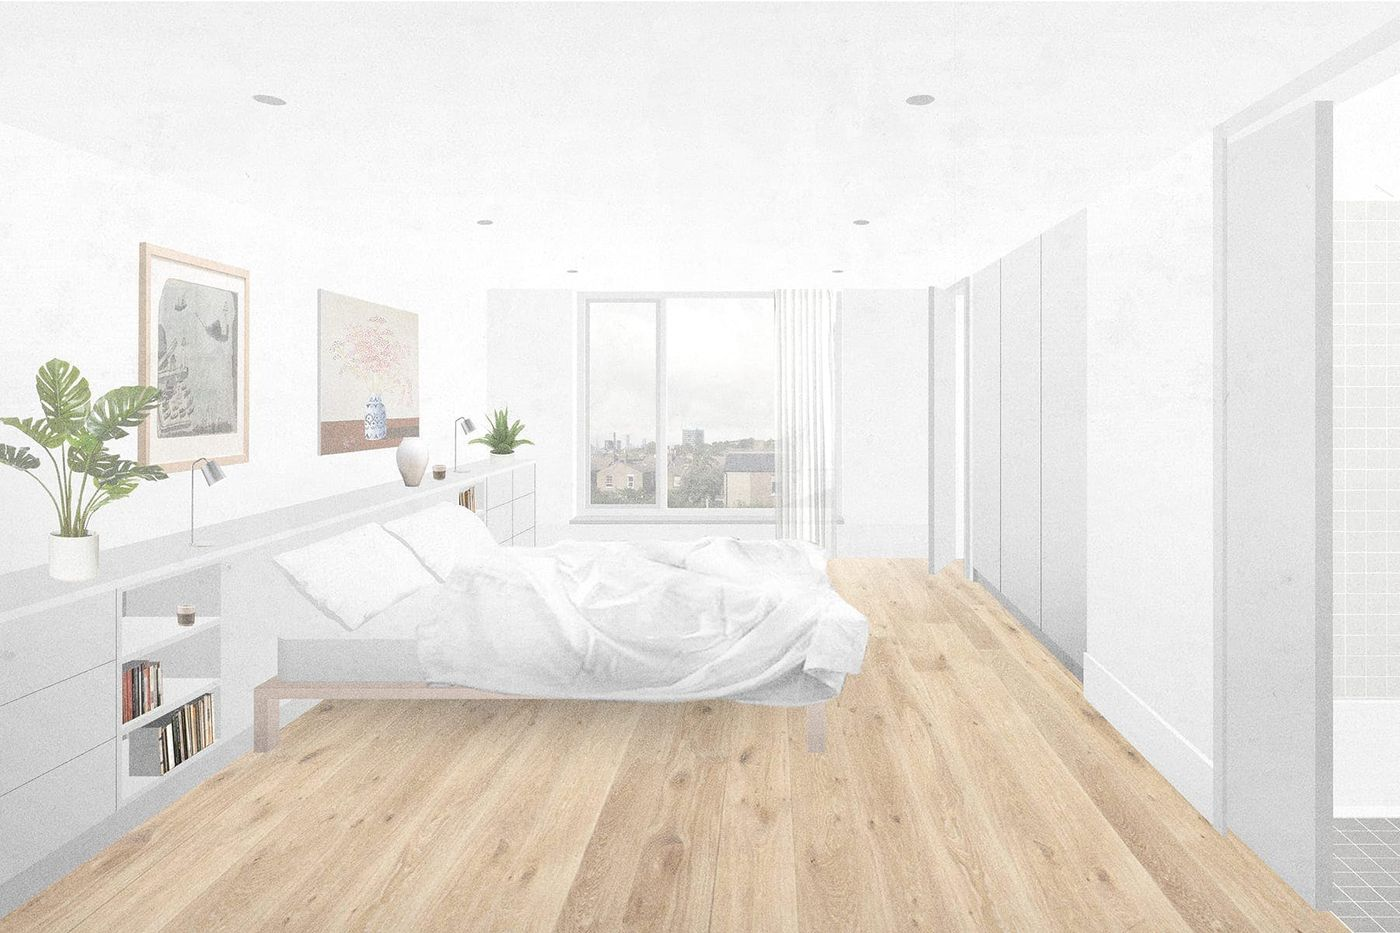 Interior view of the master bedroom within the proposed rear dormer extension and loft conversion at Northbrook Road, London designed by From Works.